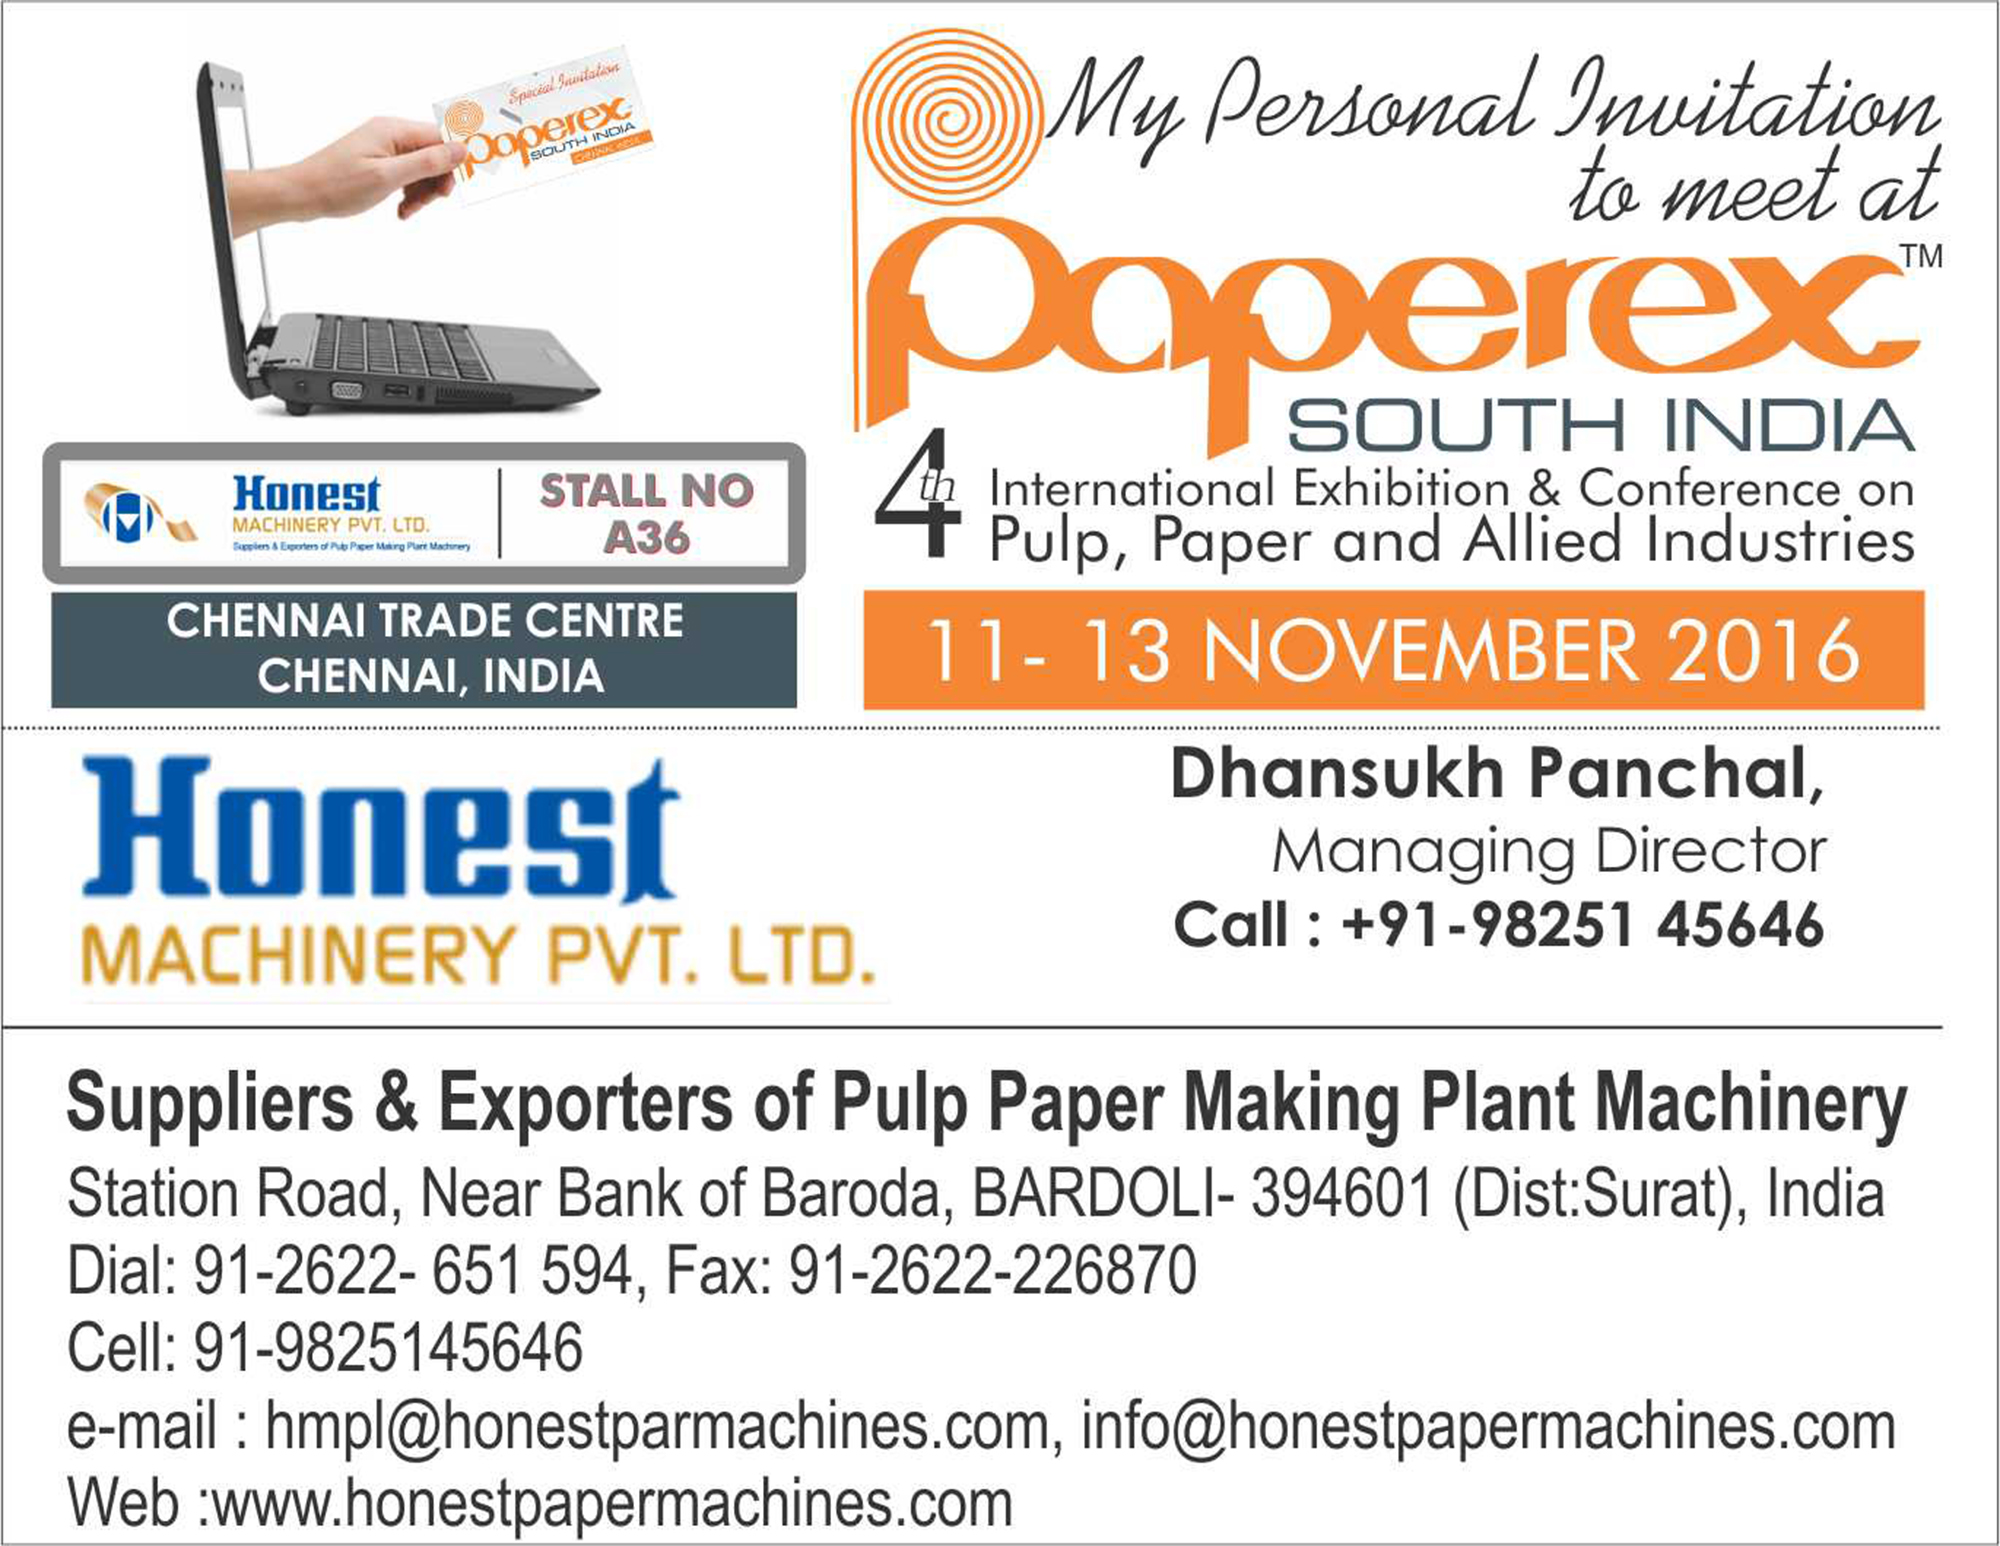 Paperex Exhibition in Chennai